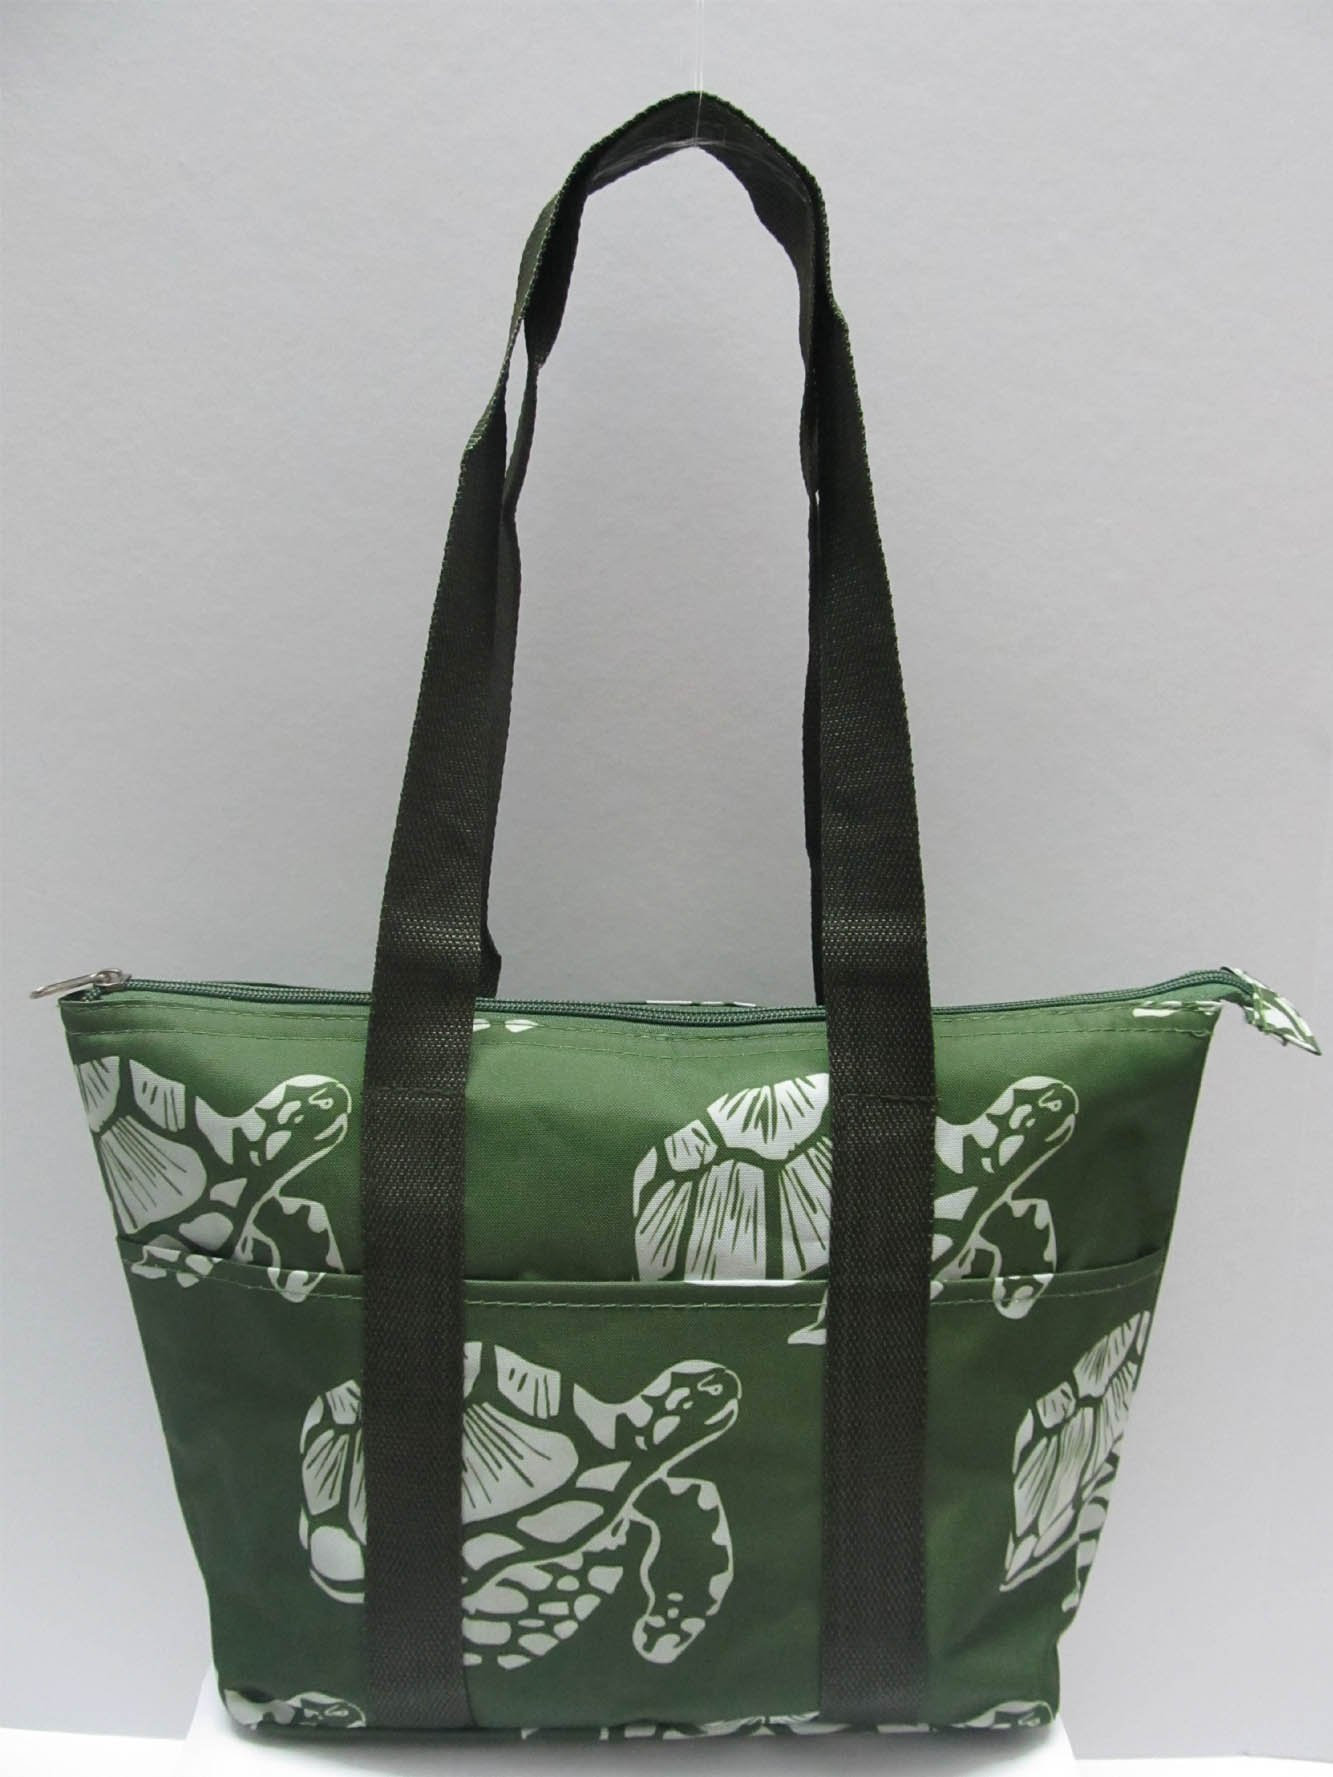 Good Bag Insulated Lunch Bag Portable Carry Storage Lunch Tote Bag - Turtle Green